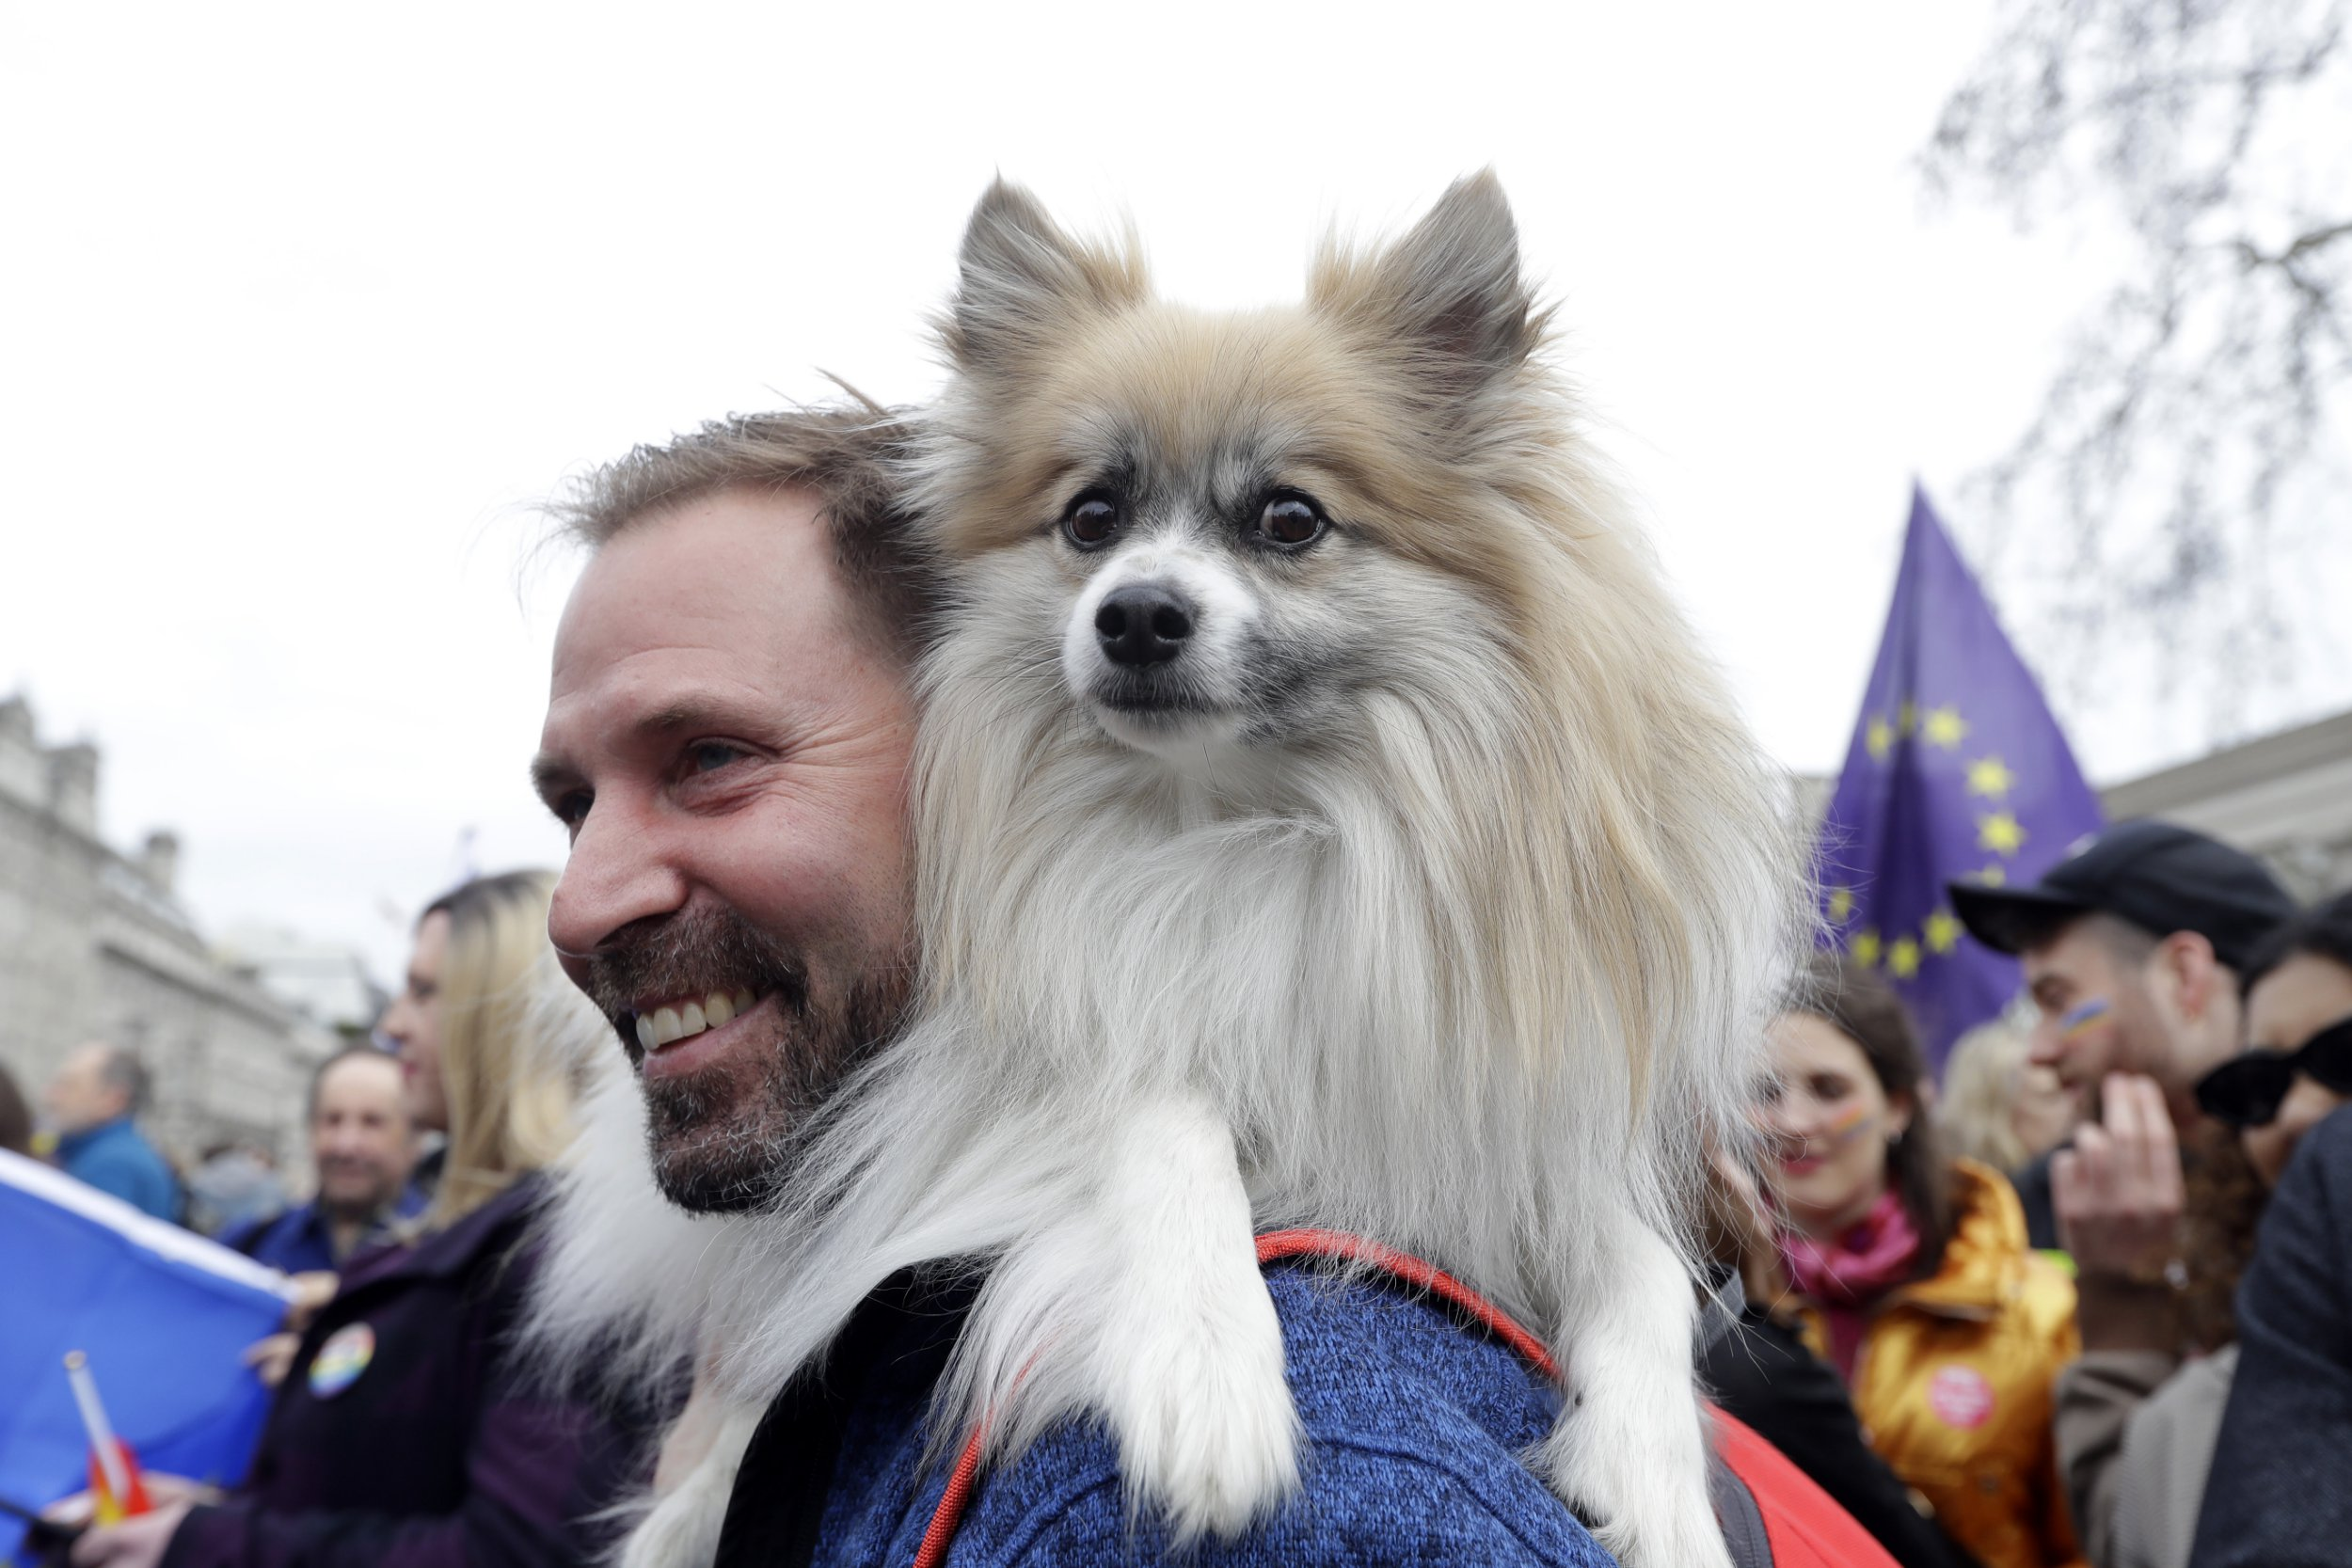 A demonstrator carries a dog on his shoulders during a Peoples Vote anti-Brexit march in London, Saturday, March 23, 2019. The march, organized by the People's Vote campaign is calling for a final vote on any proposed Brexit deal. This week the EU has granted Britain's Prime Minister Theresa May a delay to the Brexit process. (AP Photo/Kirsty Wigglesworth)